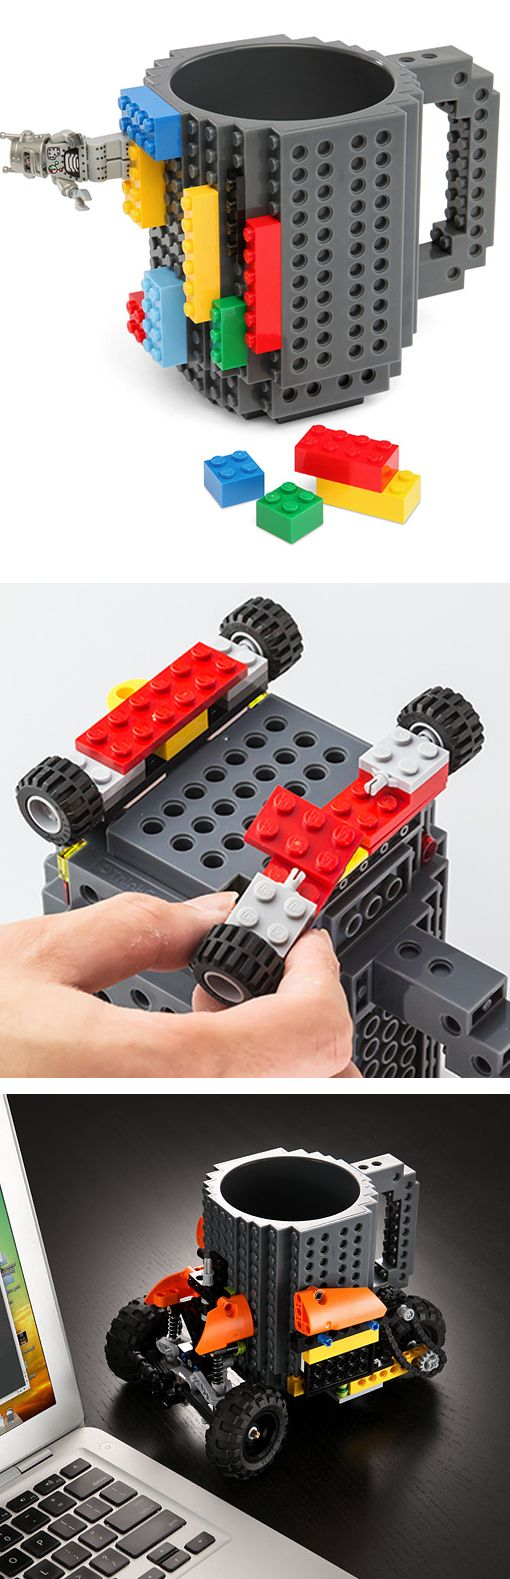 85 Best My Style Images On Pinterest Beekeeping Bees And Bee Happy Hard Drive Circuit Board Desk Clock Livbit Lego Mug For The Geek In Your Life